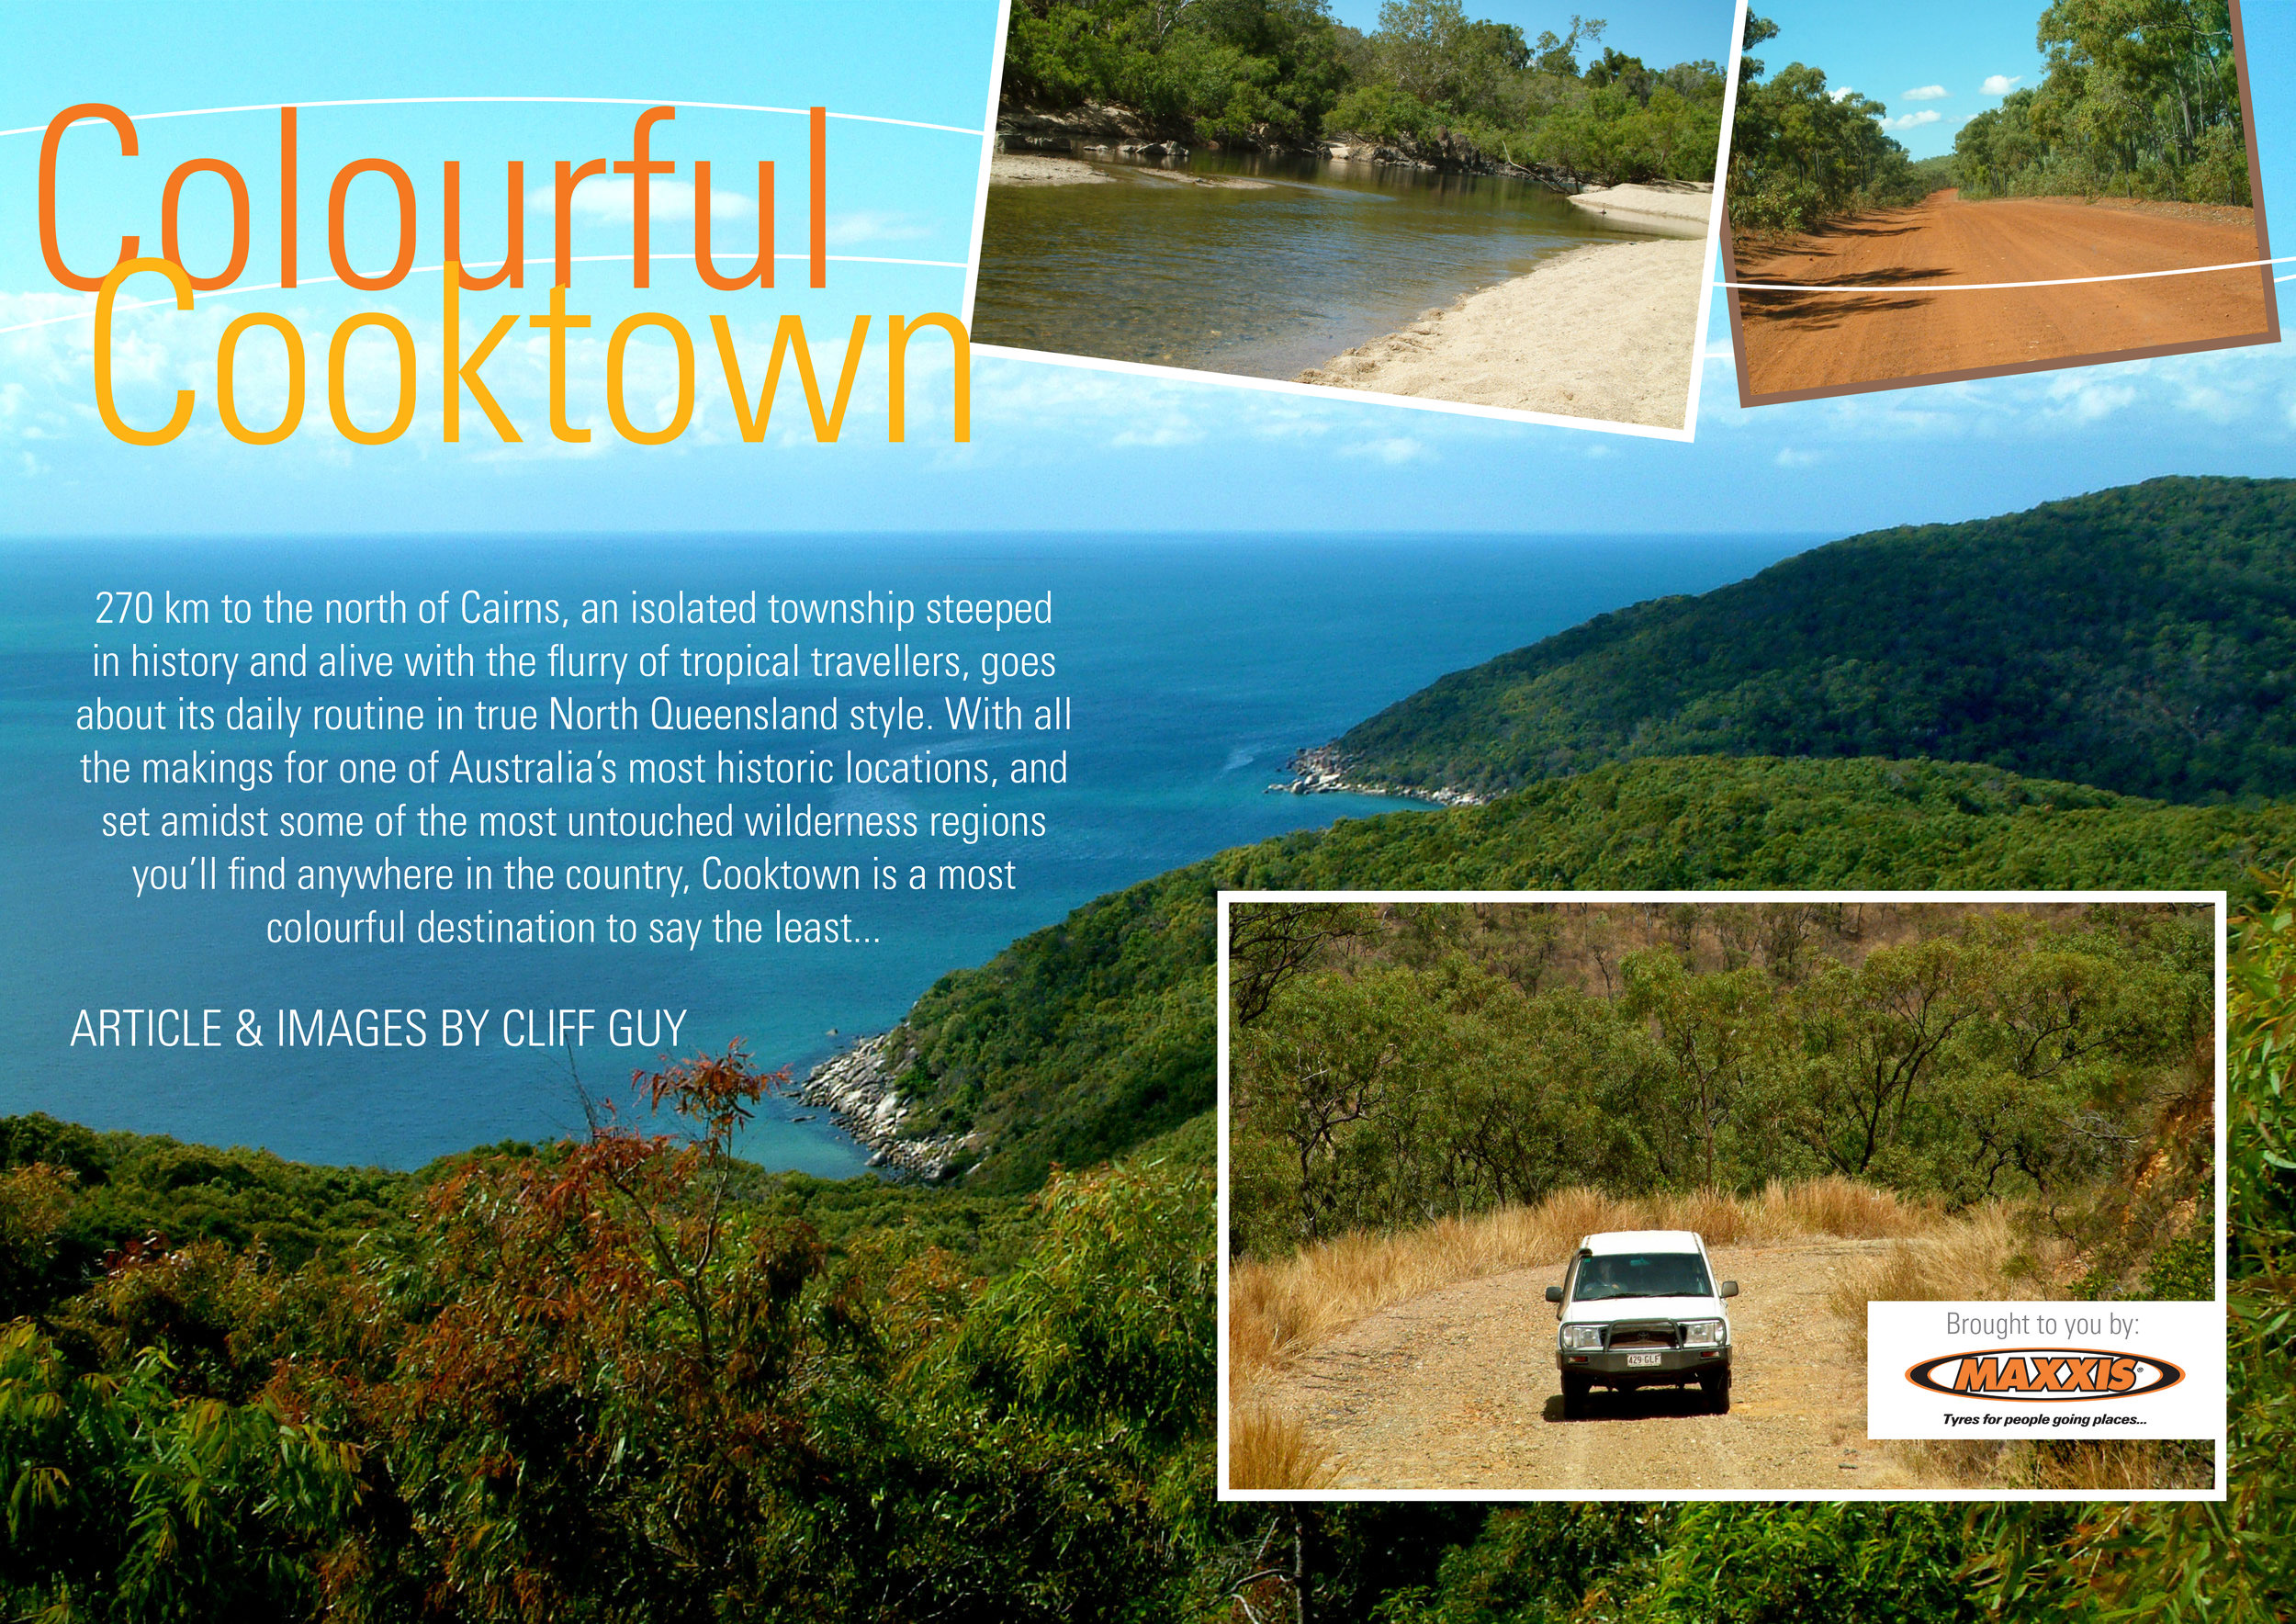 Colourful Cooktown-1.jpg